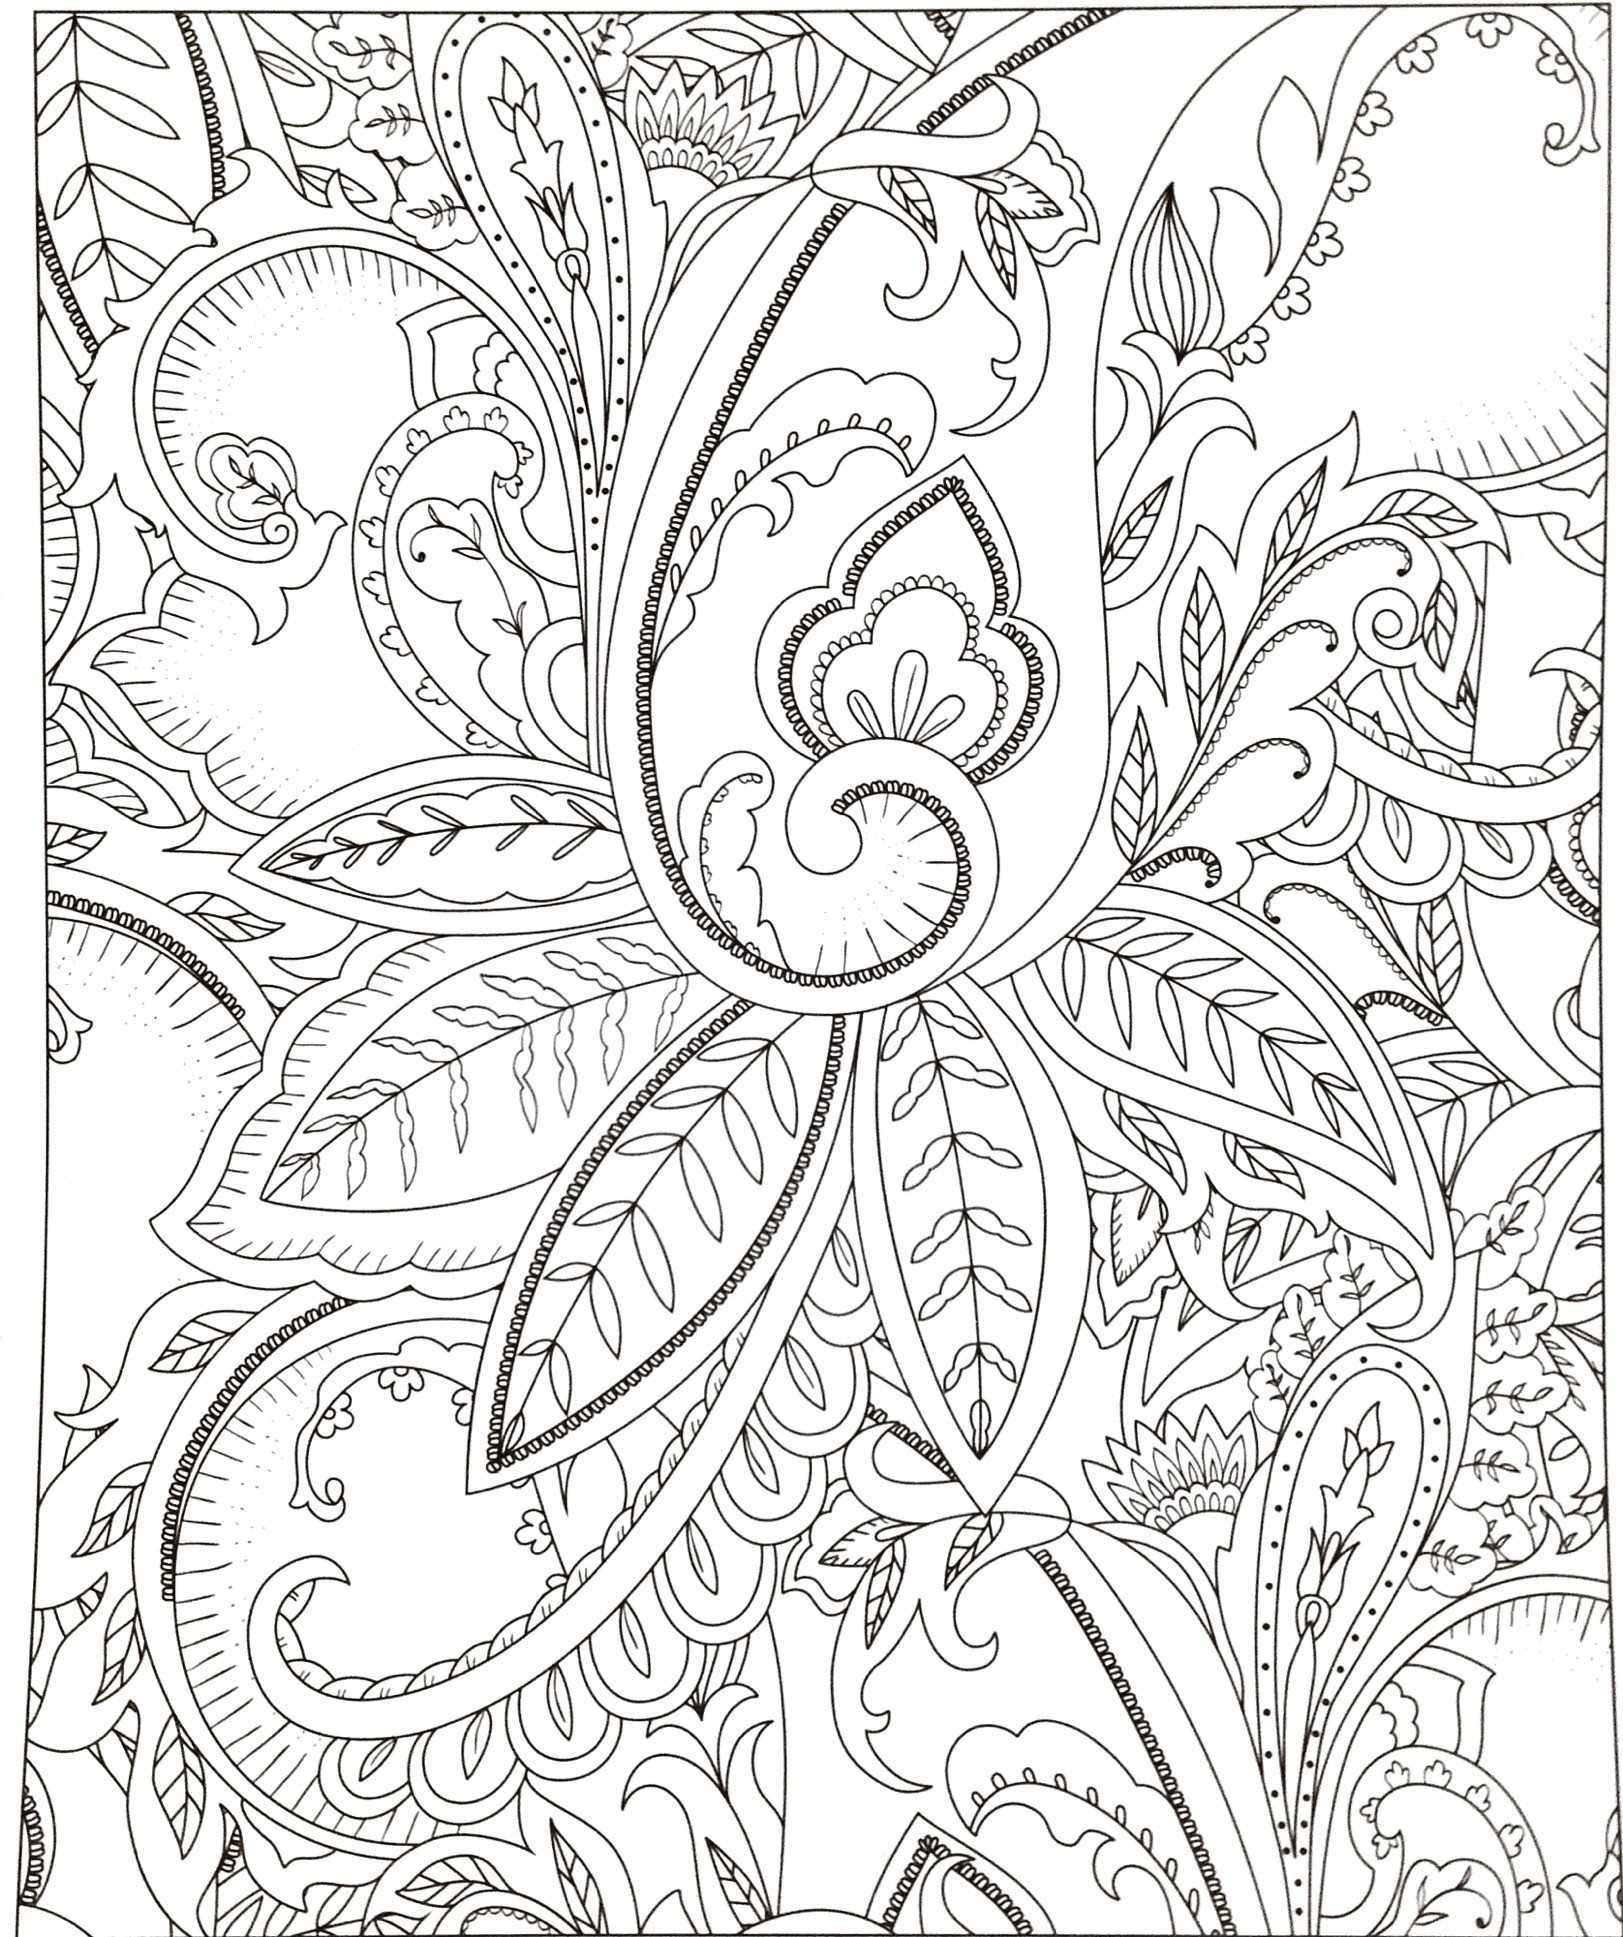 21 Friendship Coloring Pages Printable Download Coloring Sheets